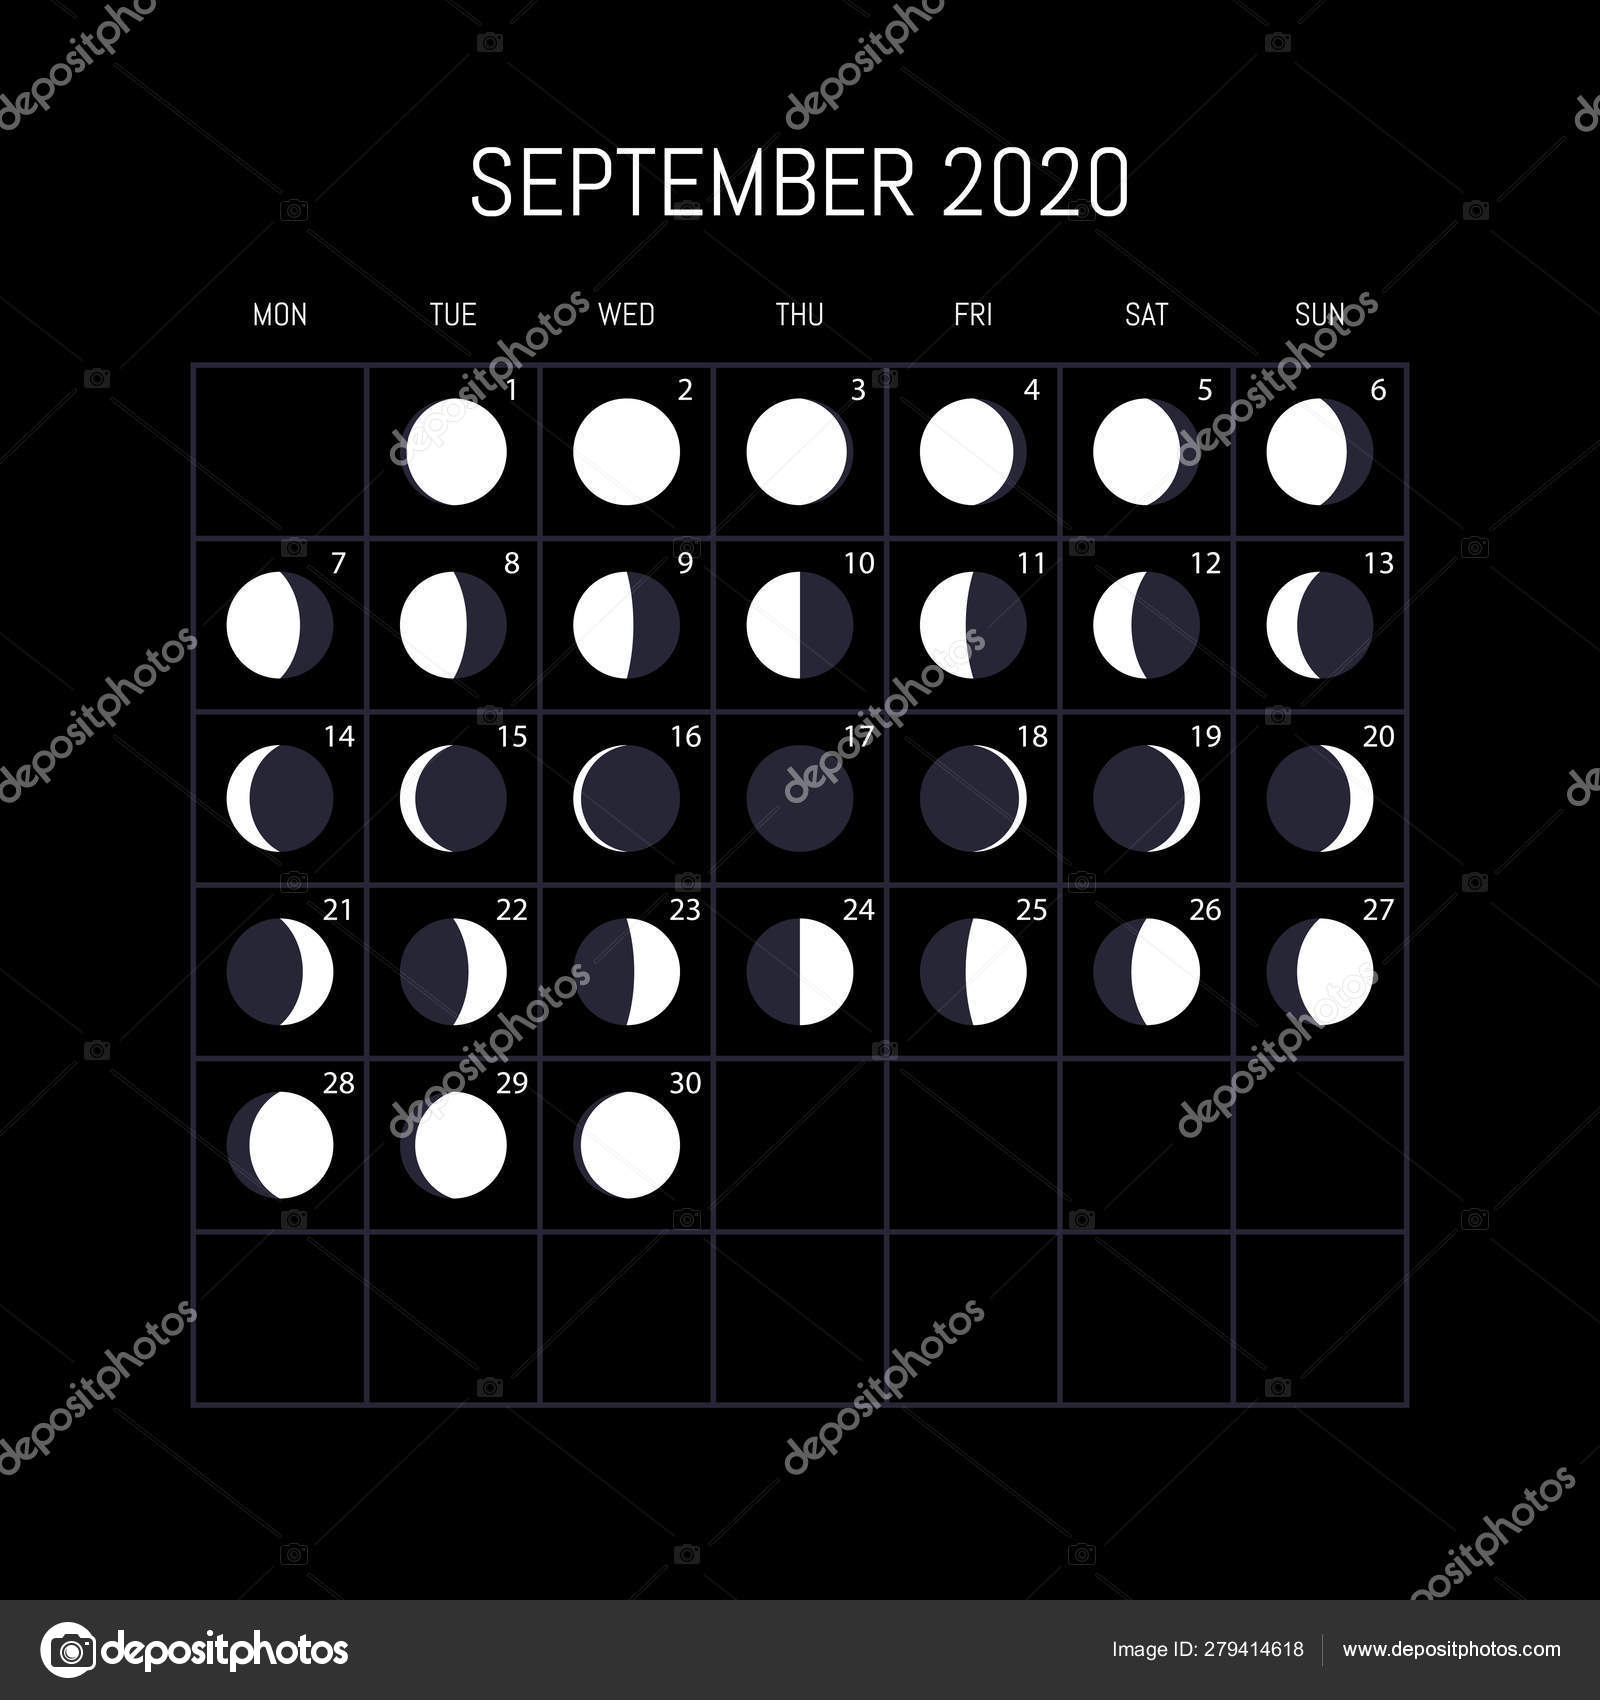 Pick 2020 Free Year At A Glance Printable | Calendar in Hunting Moon Calendar 2022